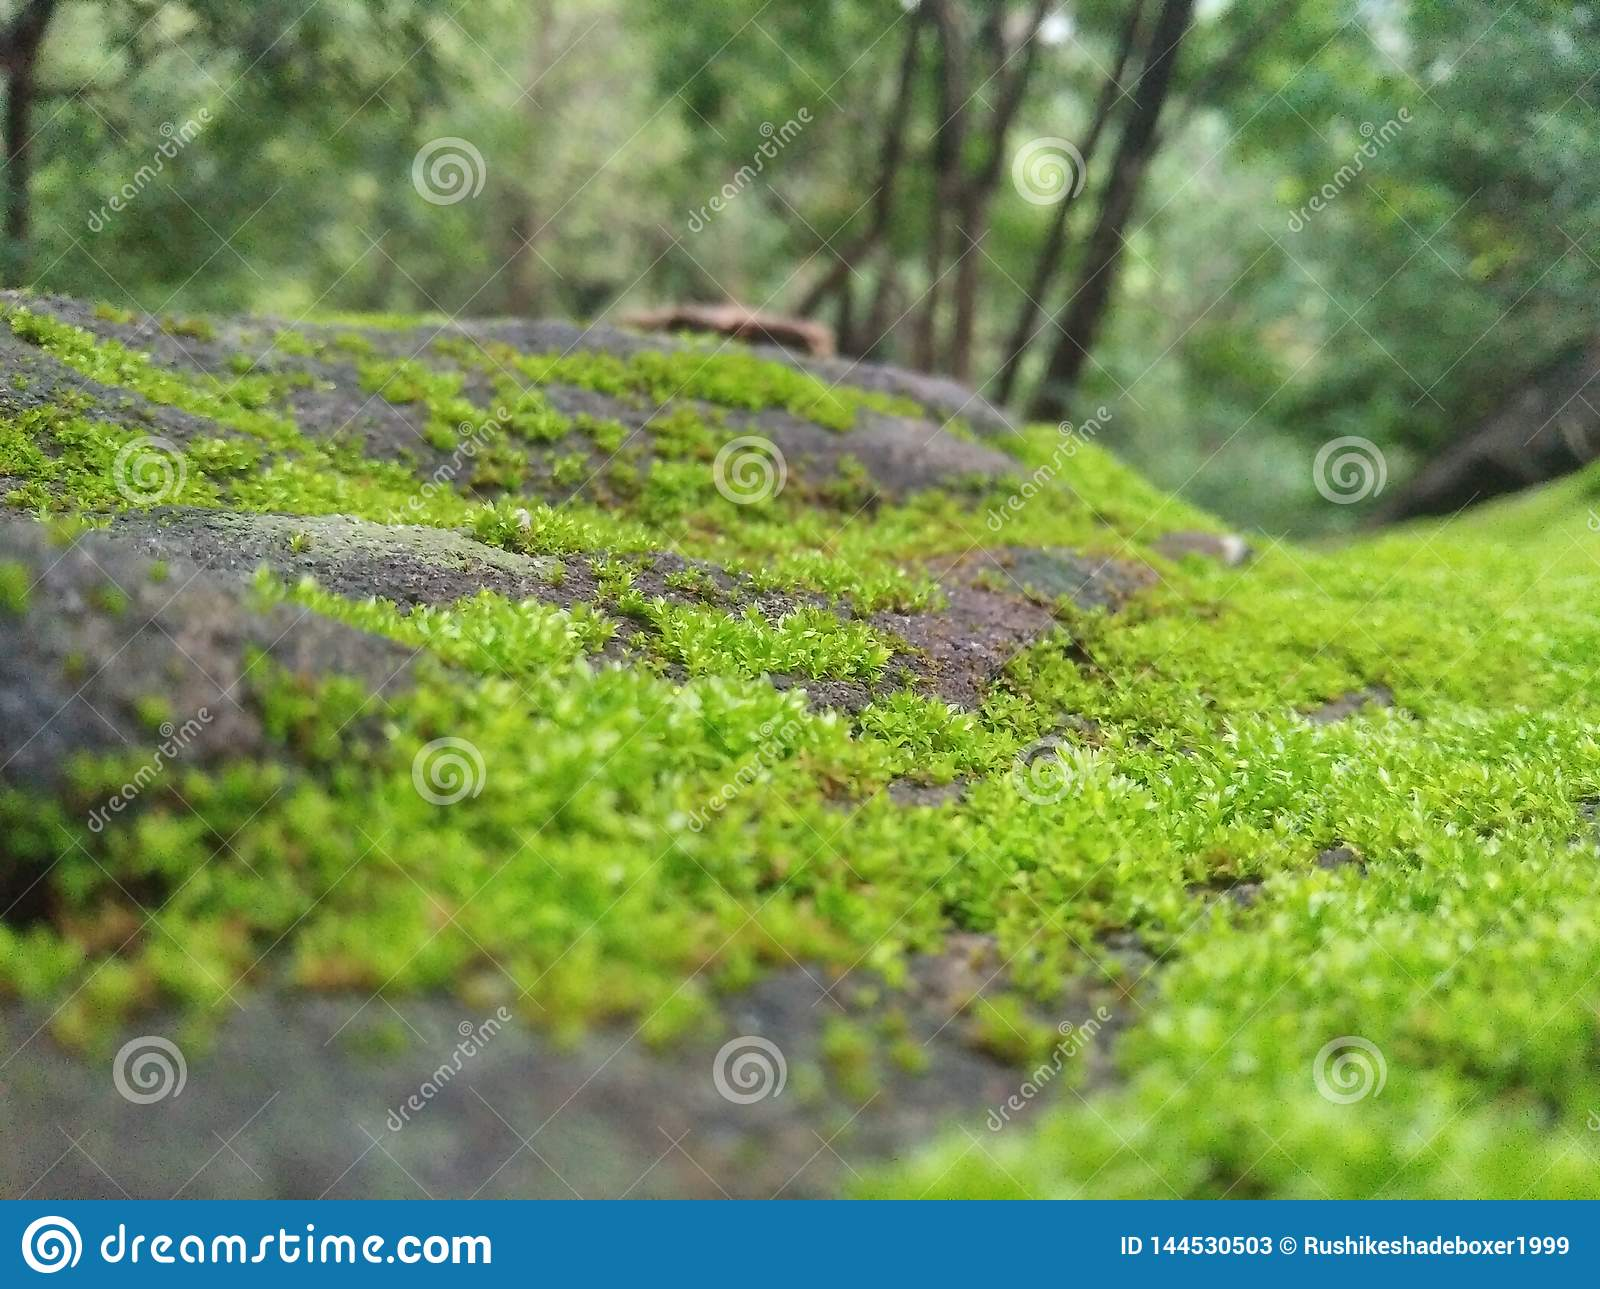 The green grass appear on the HARD ROCK STONE